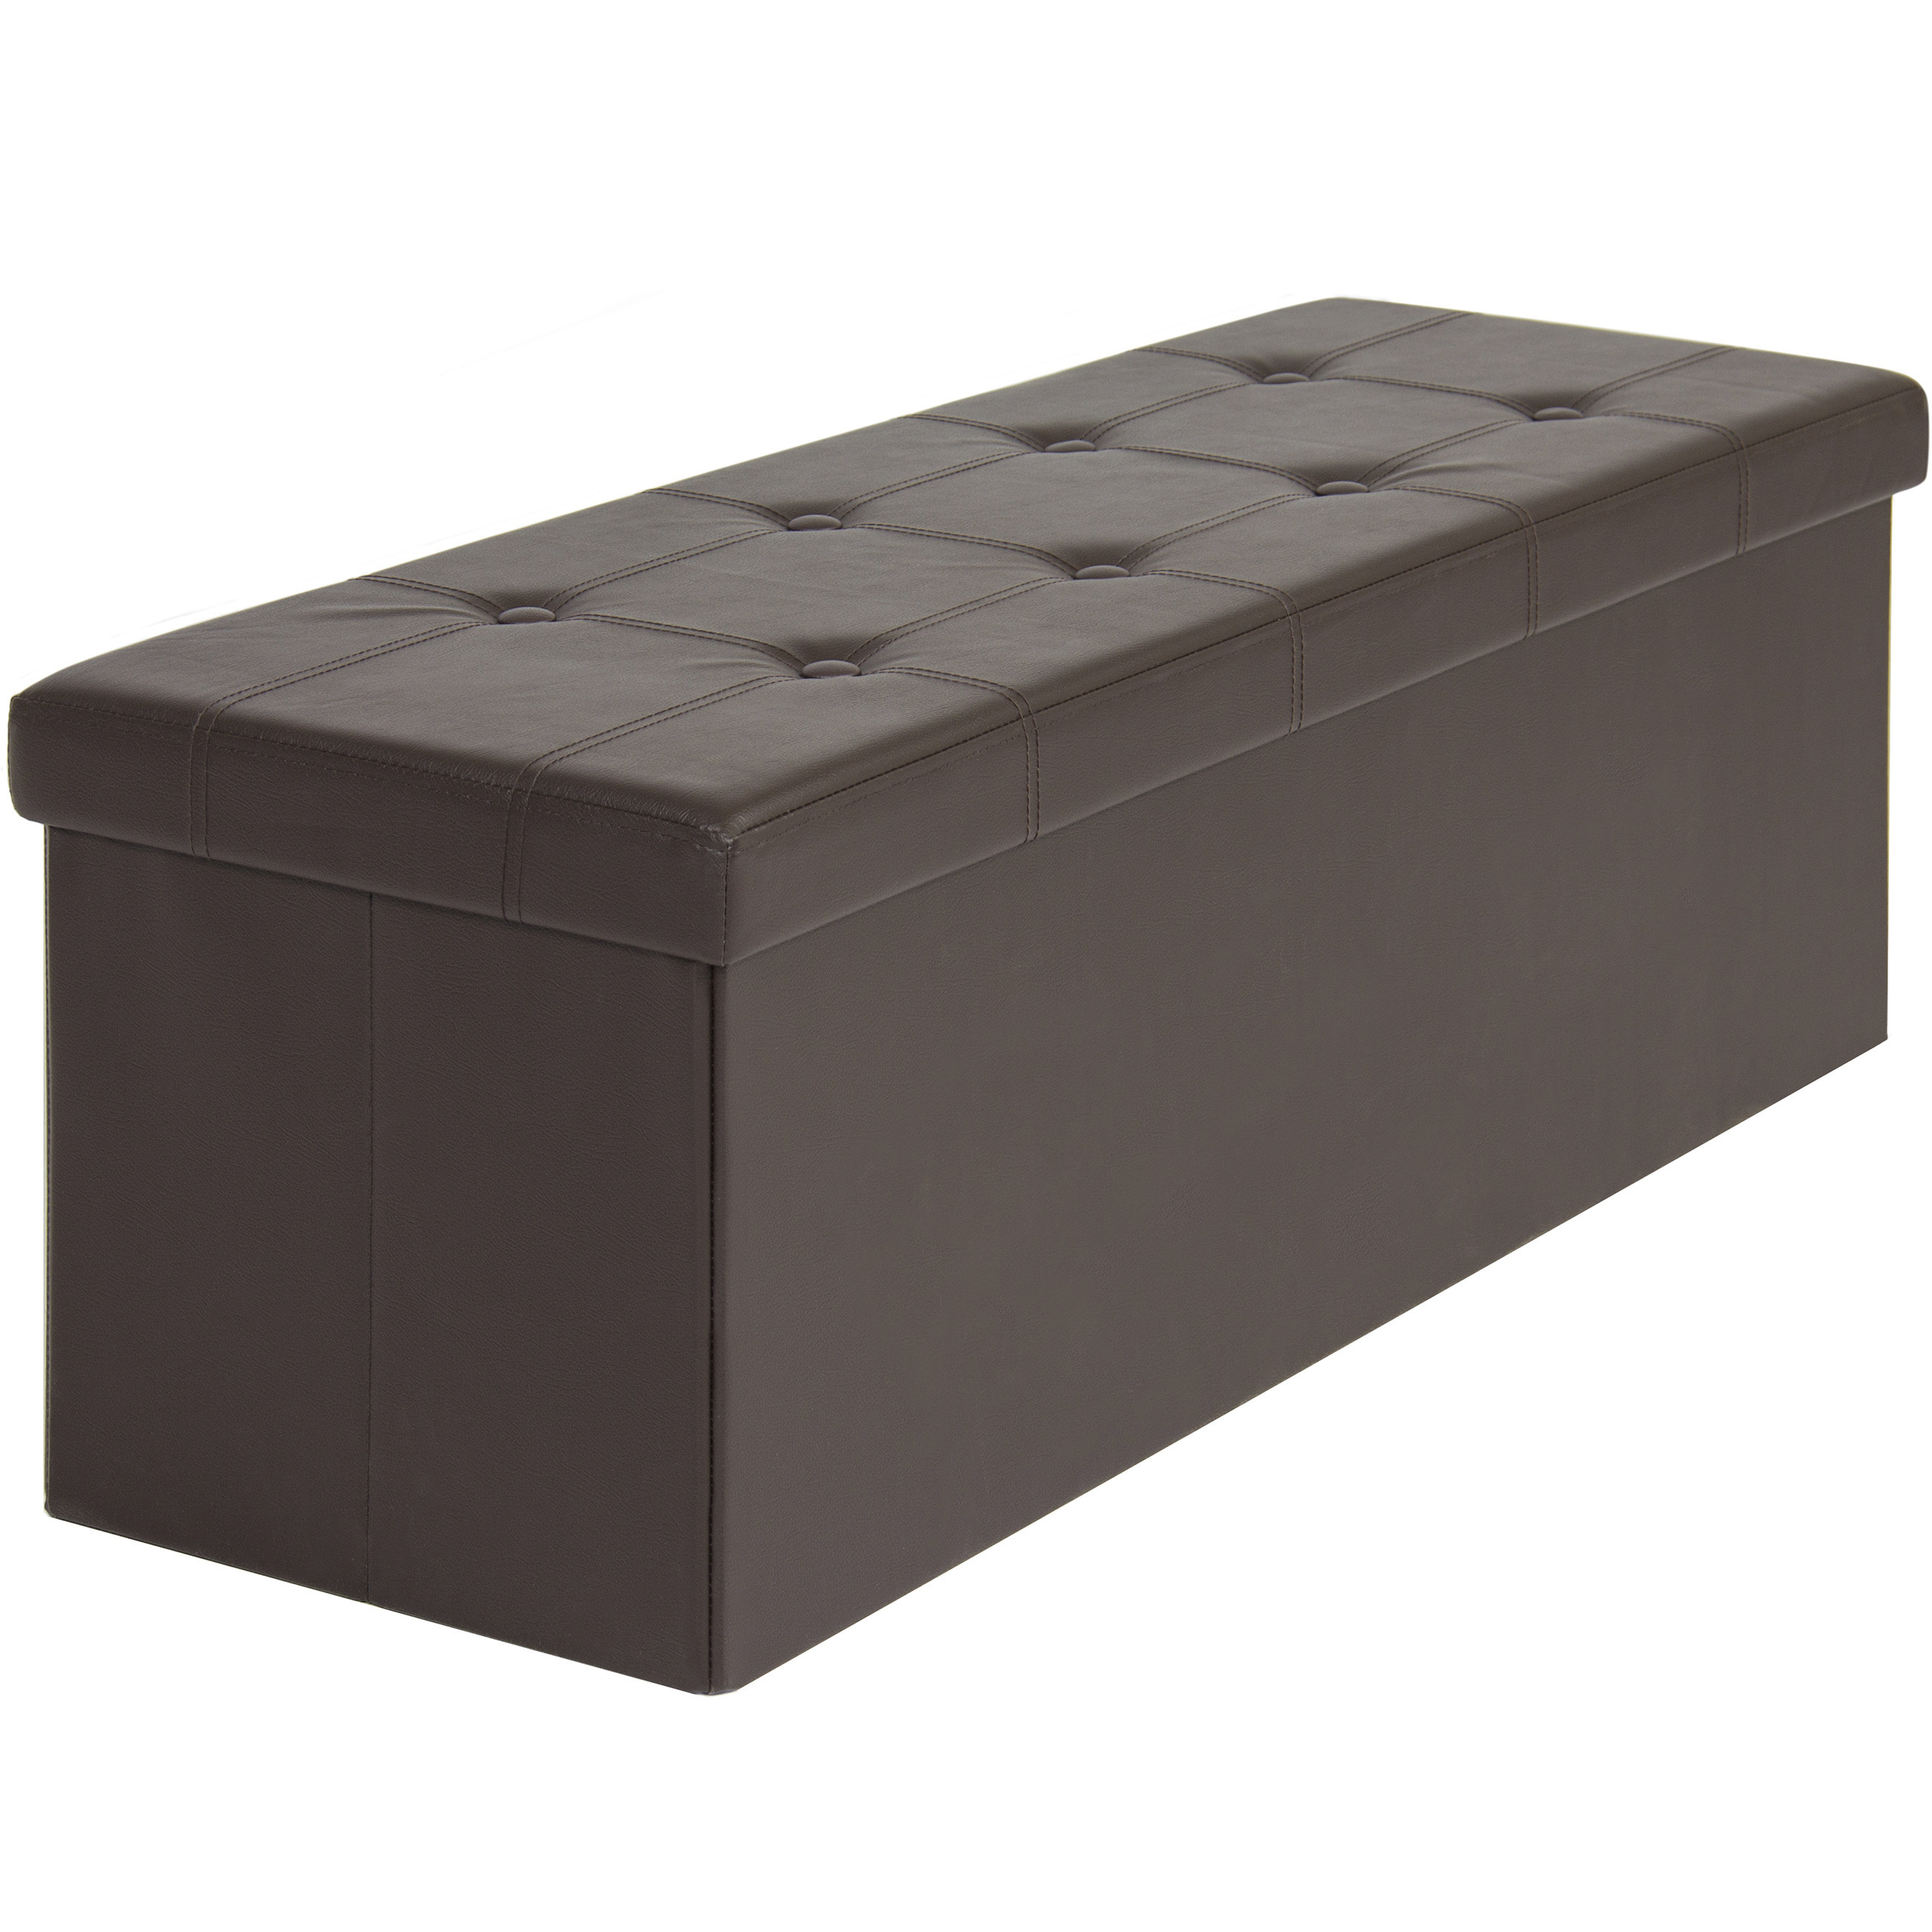 Faux Leather Folding Storage Ottoman Large Brown Bench Foot Rest Stool Seat  sc 1 st  Walmart & Faux Leather Folding Storage Ottoman Large Brown Bench Foot Rest ... islam-shia.org